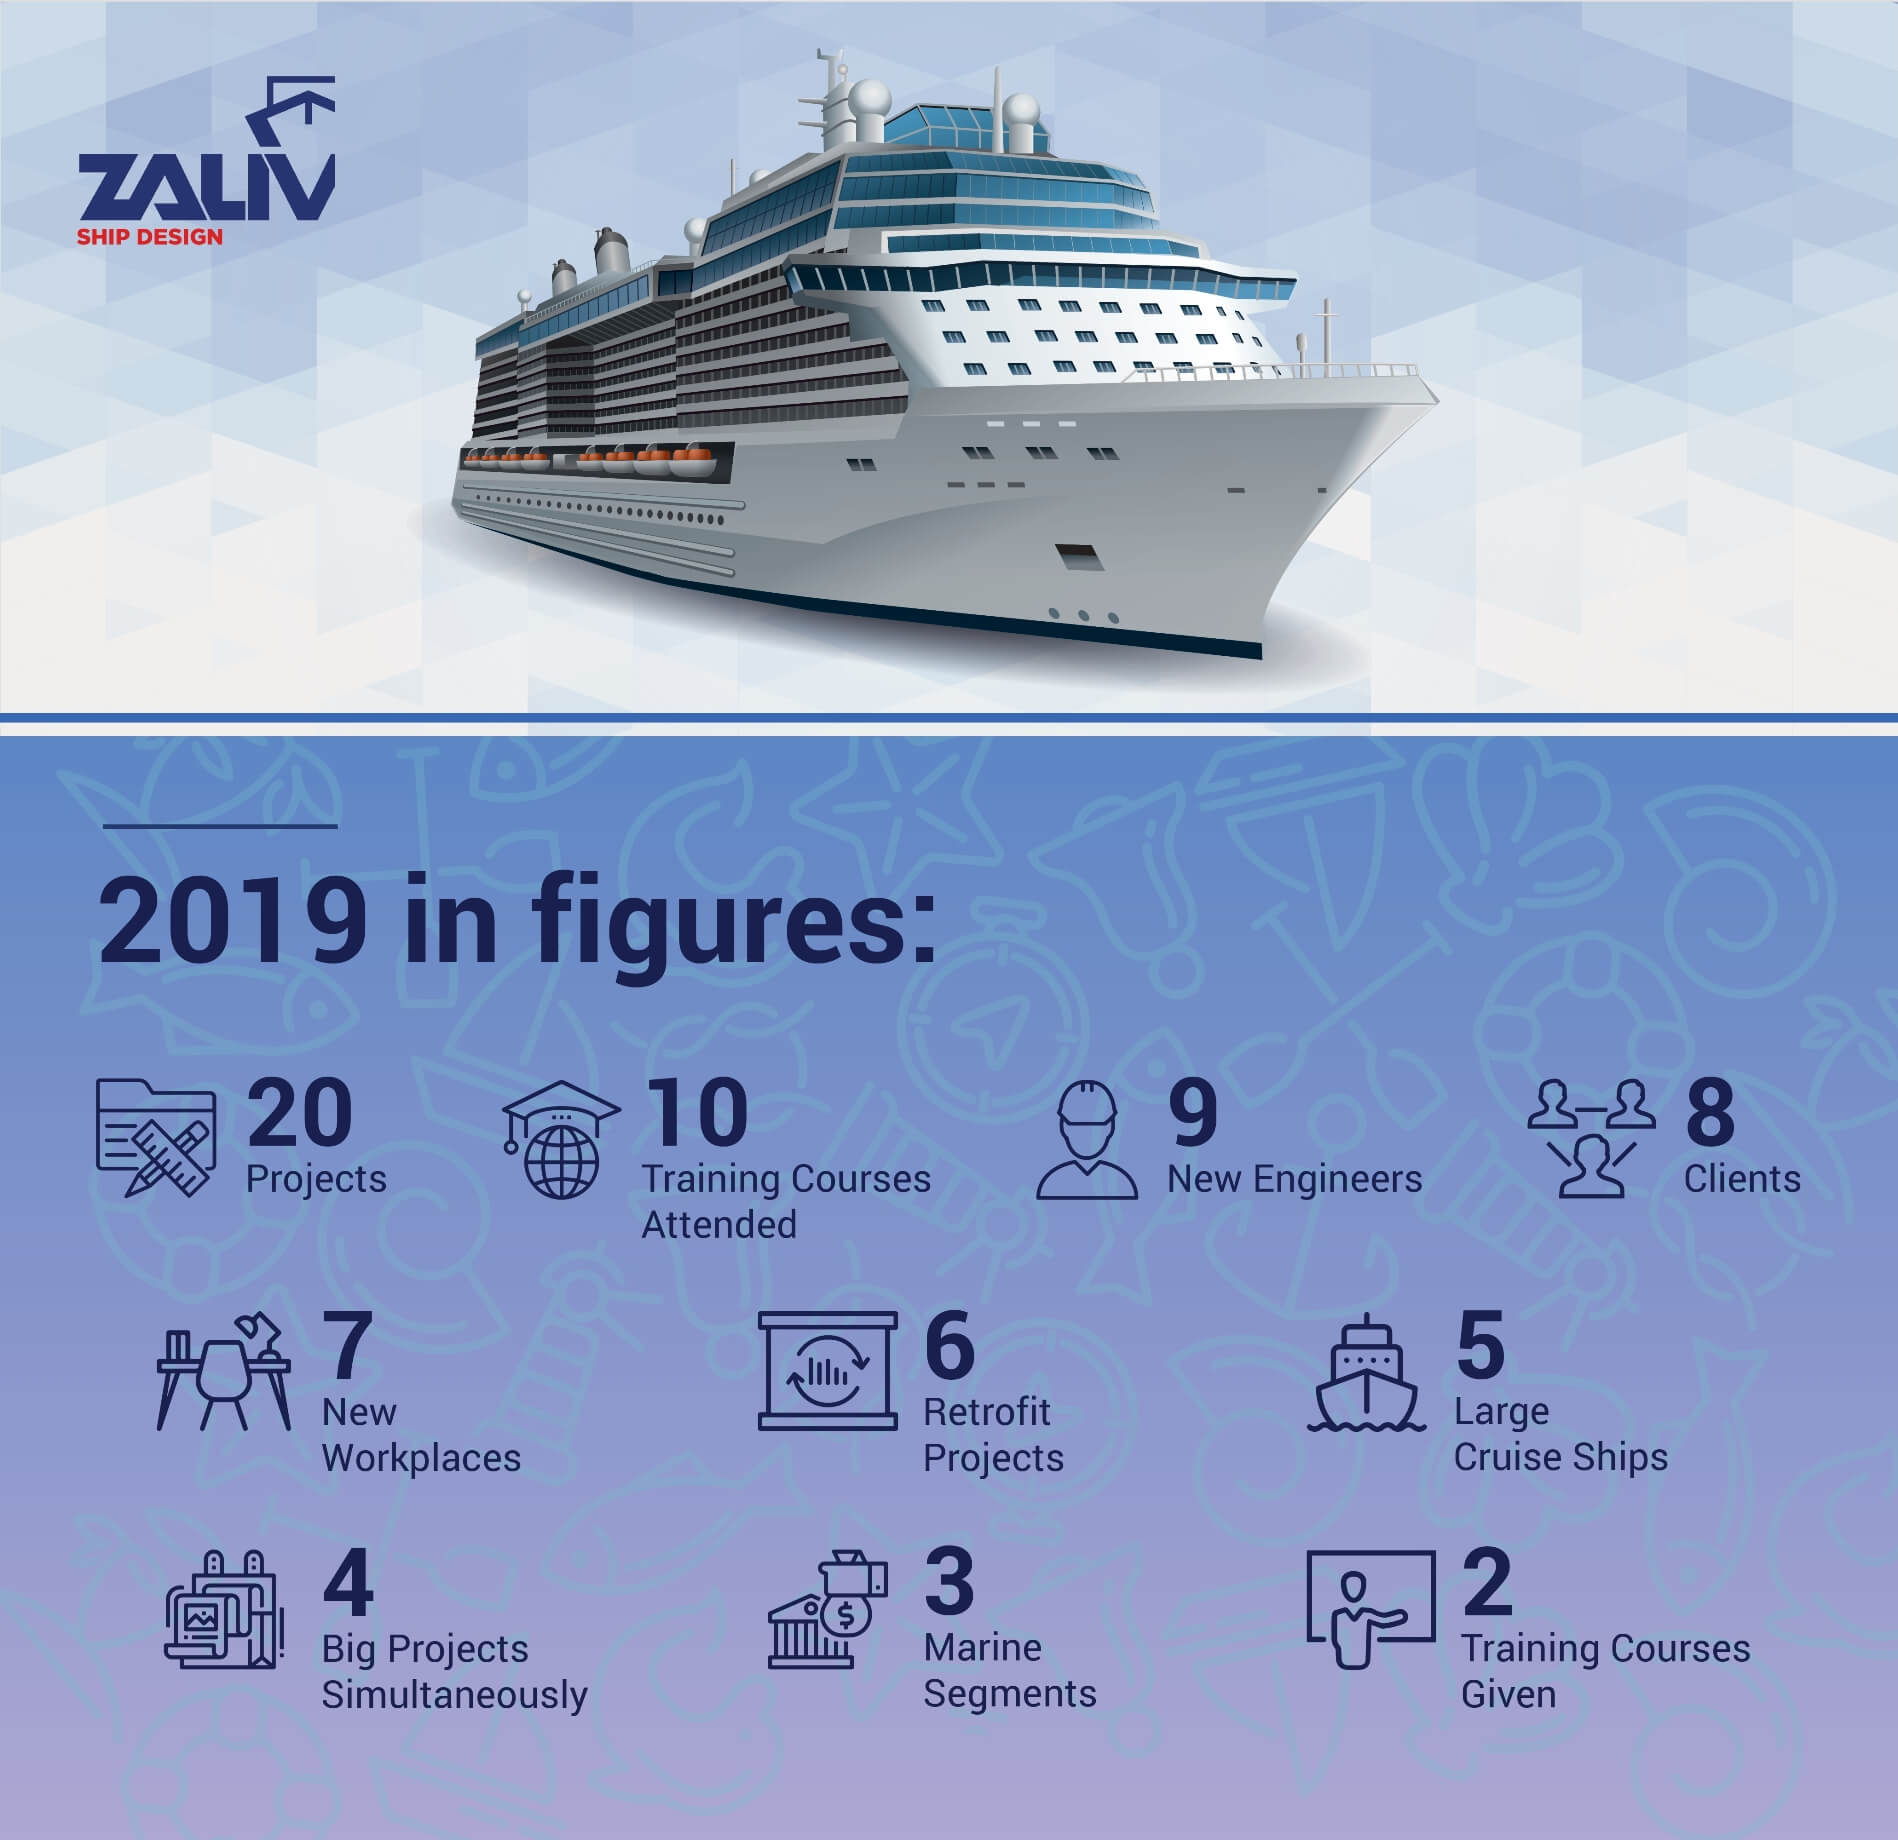 Zaliv Ship Design 2019 Project figures